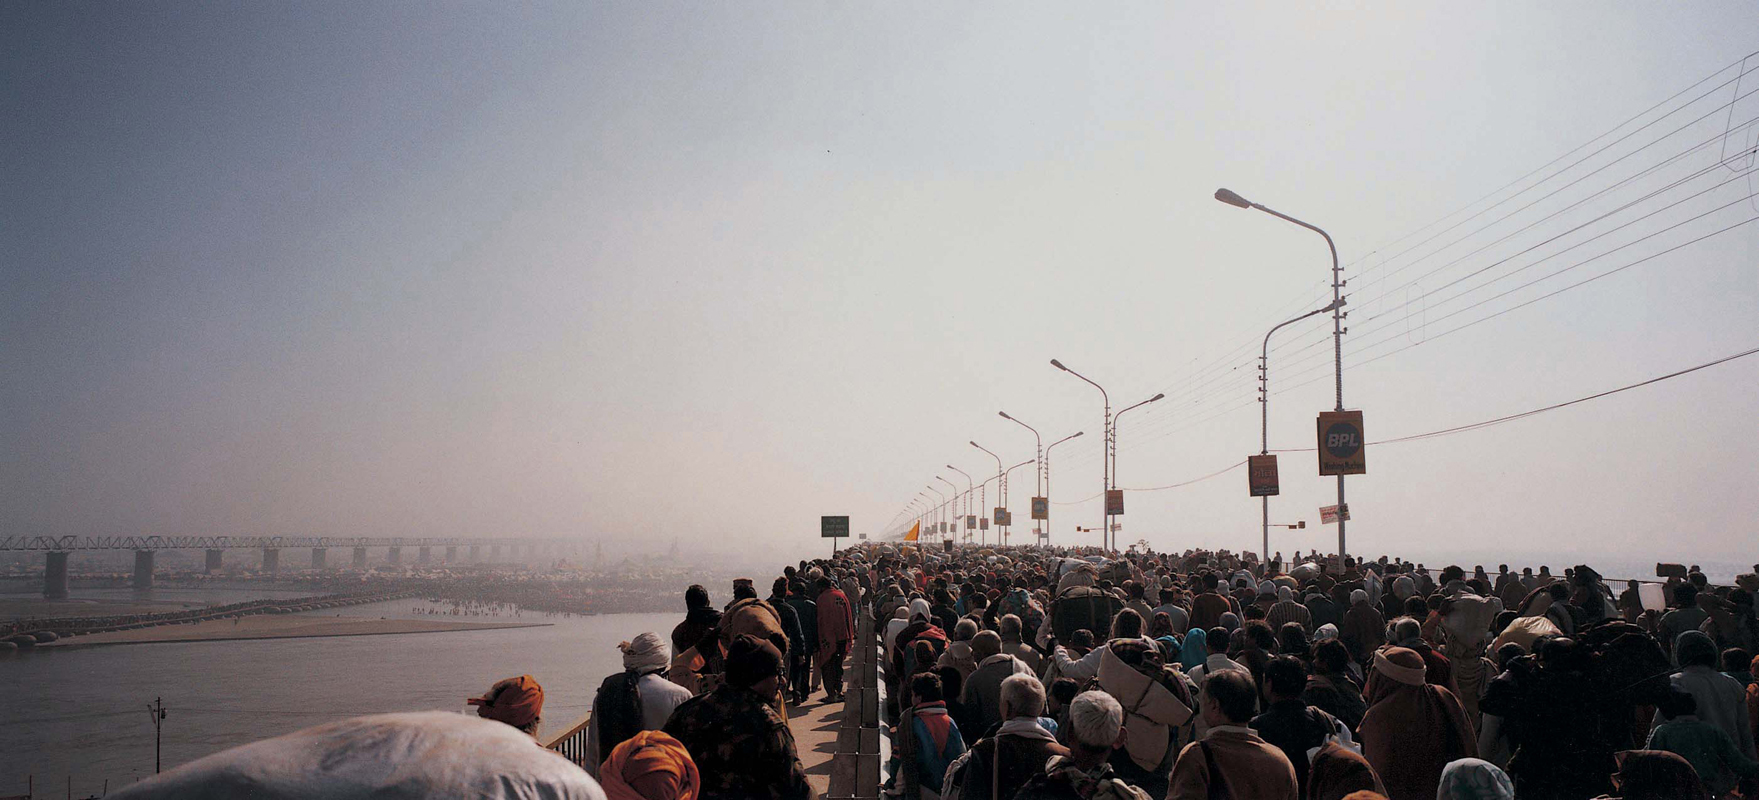 Armin Linke, Maha Kumbh Mela, Allahabad / India 2001 © Armin Linke, Photo: Courtesy of the artist